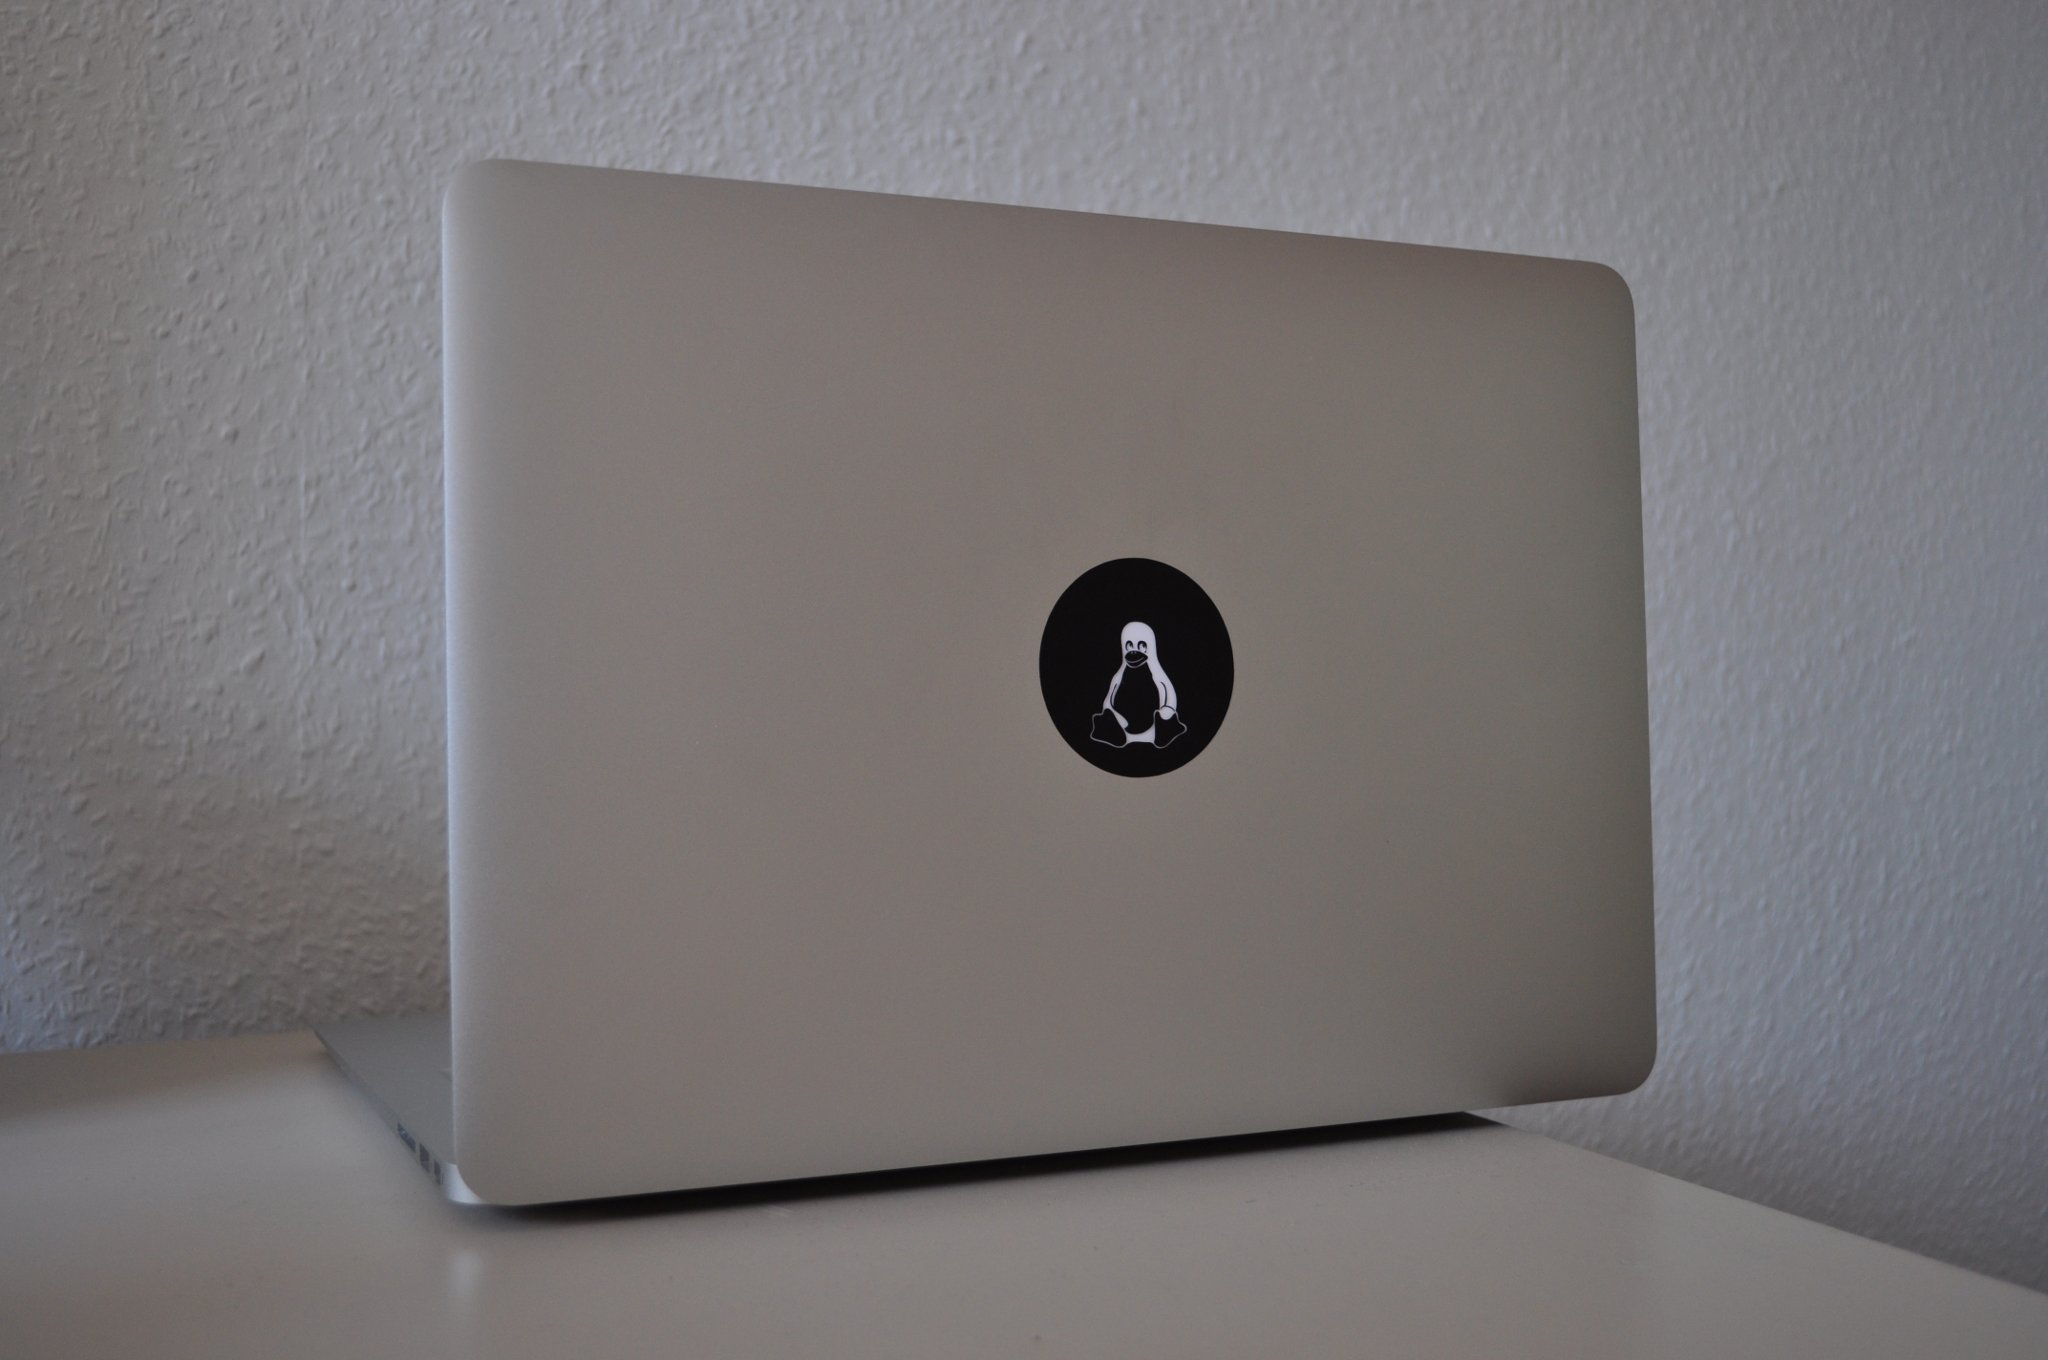 Tuxbook Glowing Tux Sticker For The Macbook Air